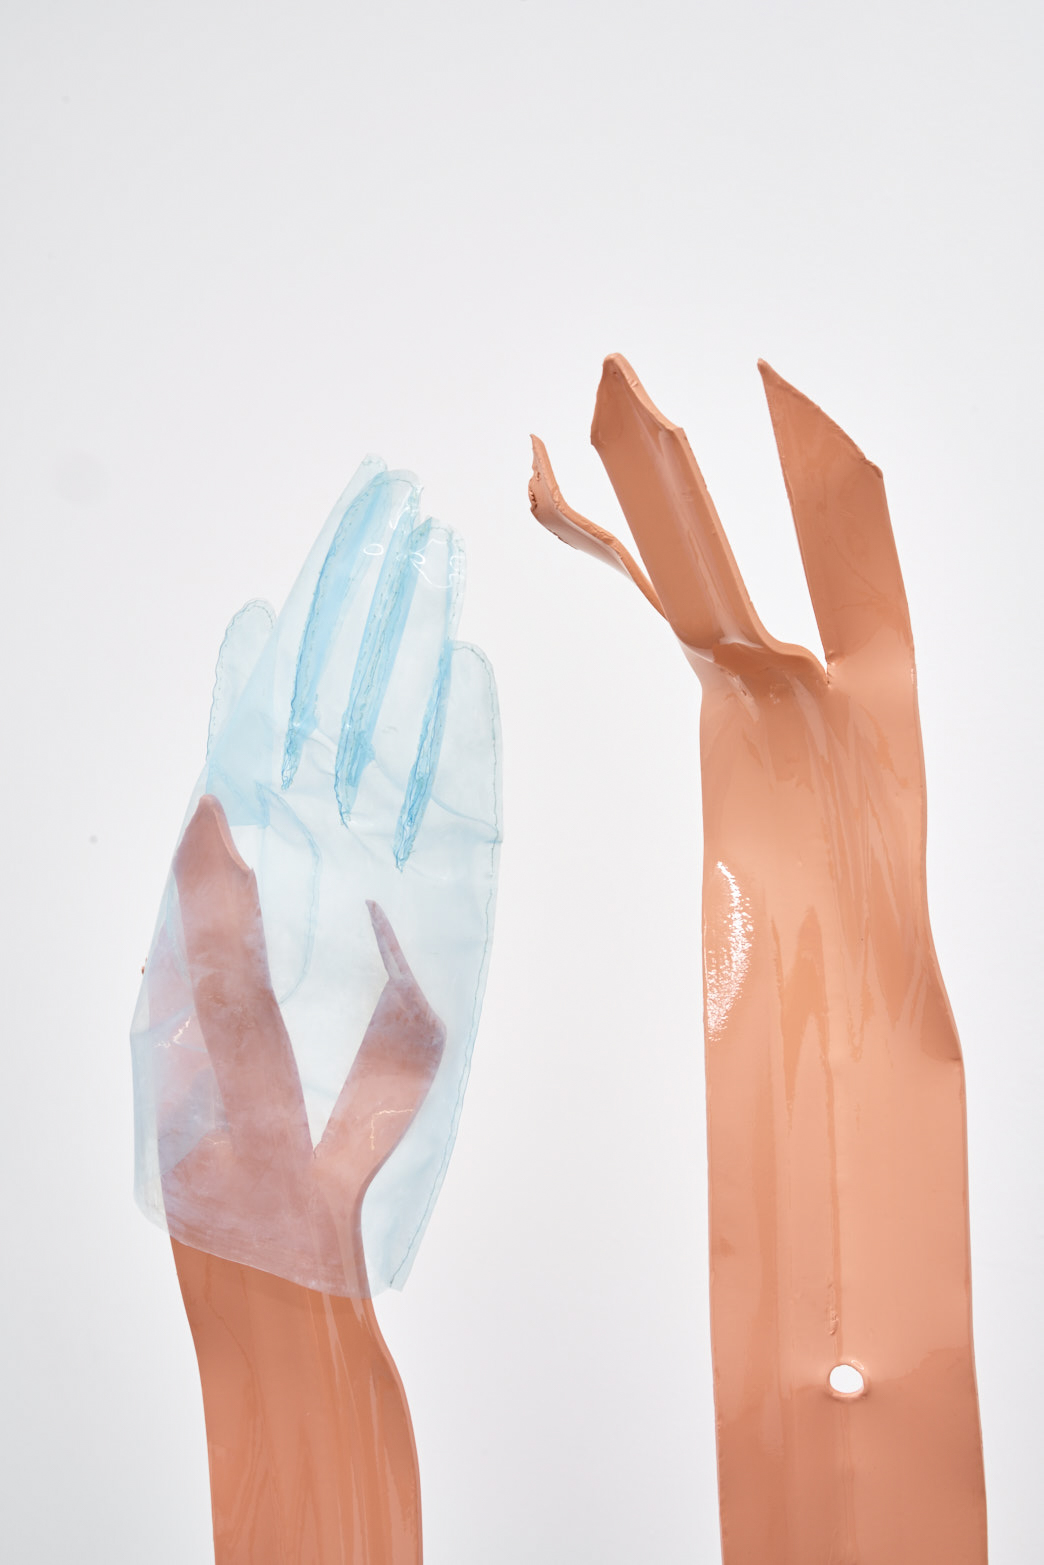 Paloma Proudfoot, Gauntlet, 2018. Anti-vandal fencing, perspex, hand-sewn plastic gloves, glazed stoneware, shower gel, photo: Original&theCopy